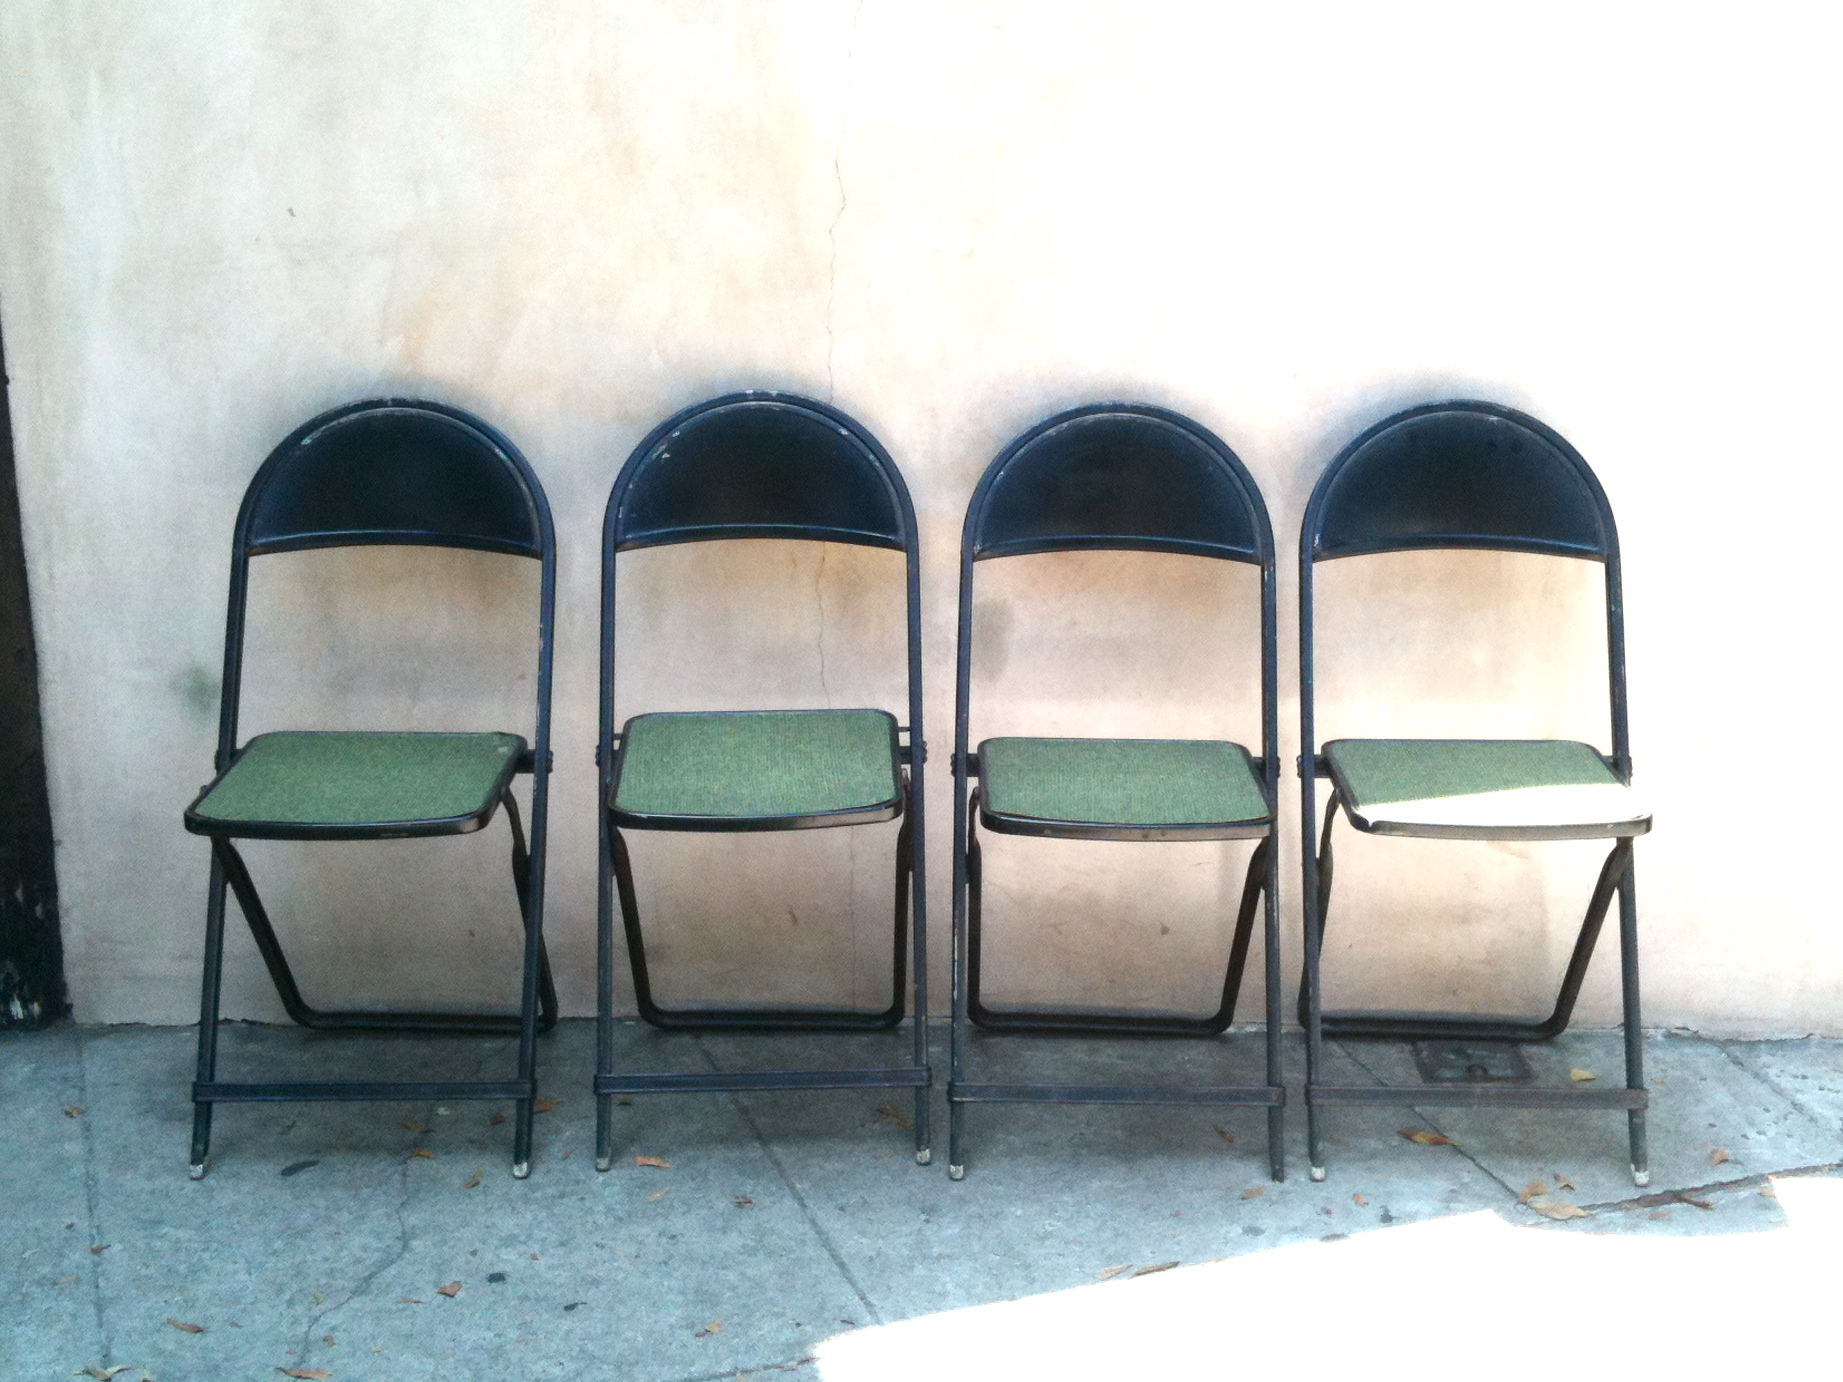 Chairs For Every Purpose